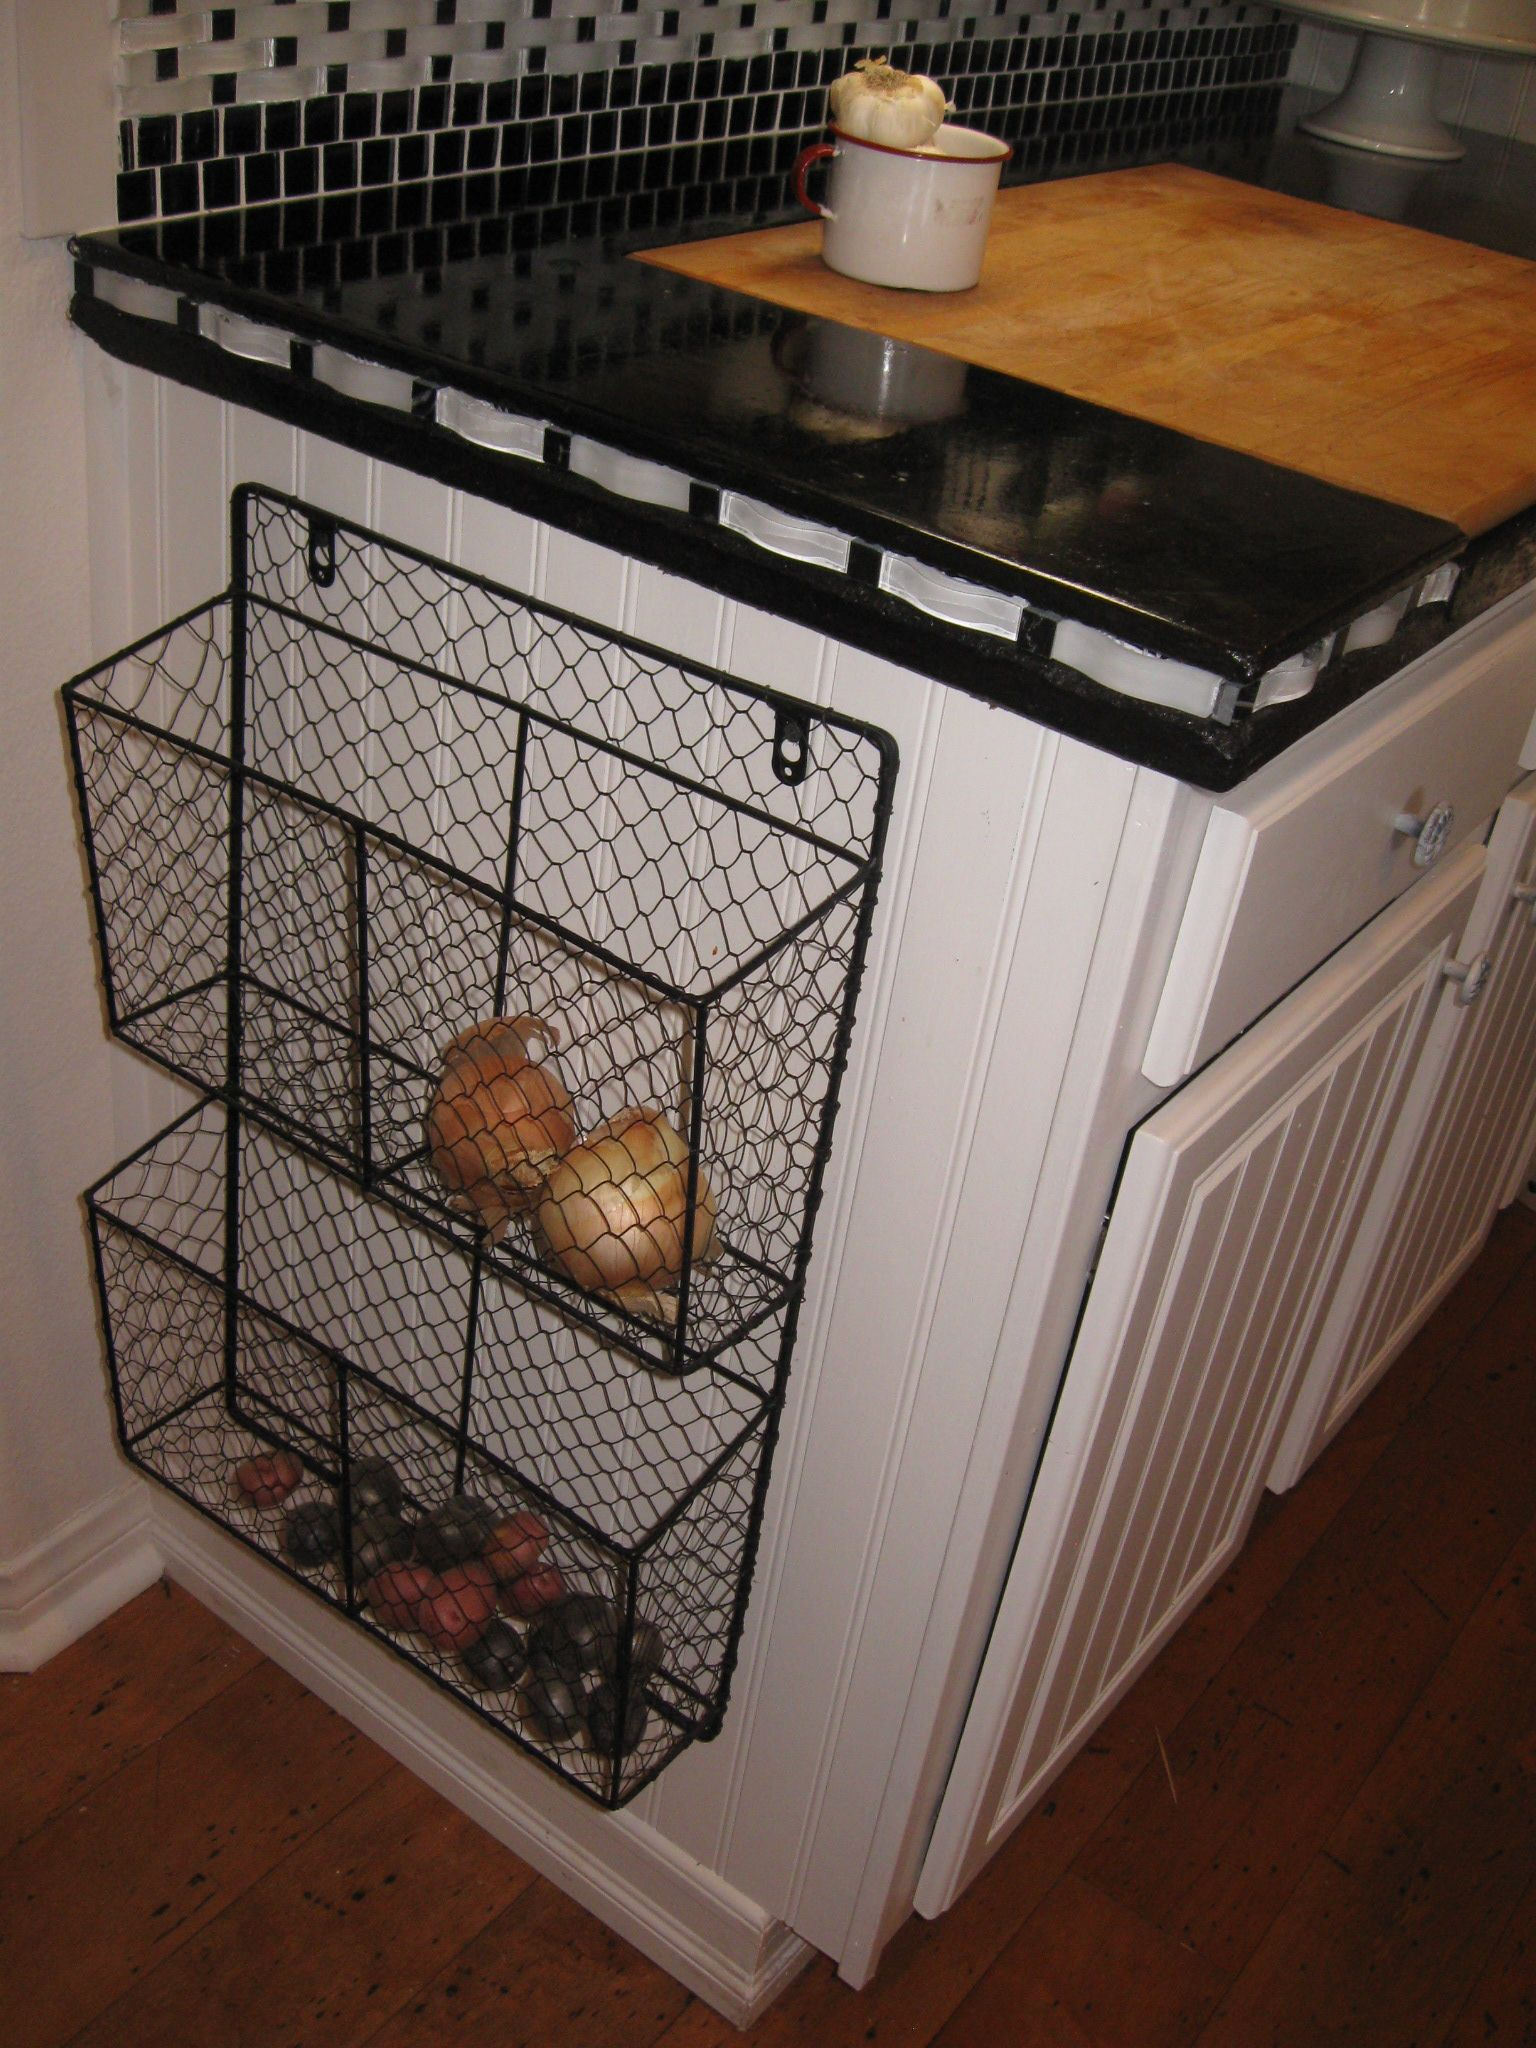 kitchen basket storage remodeling ideas pictures Хранение овощей in 2018 how to get organized pinterest